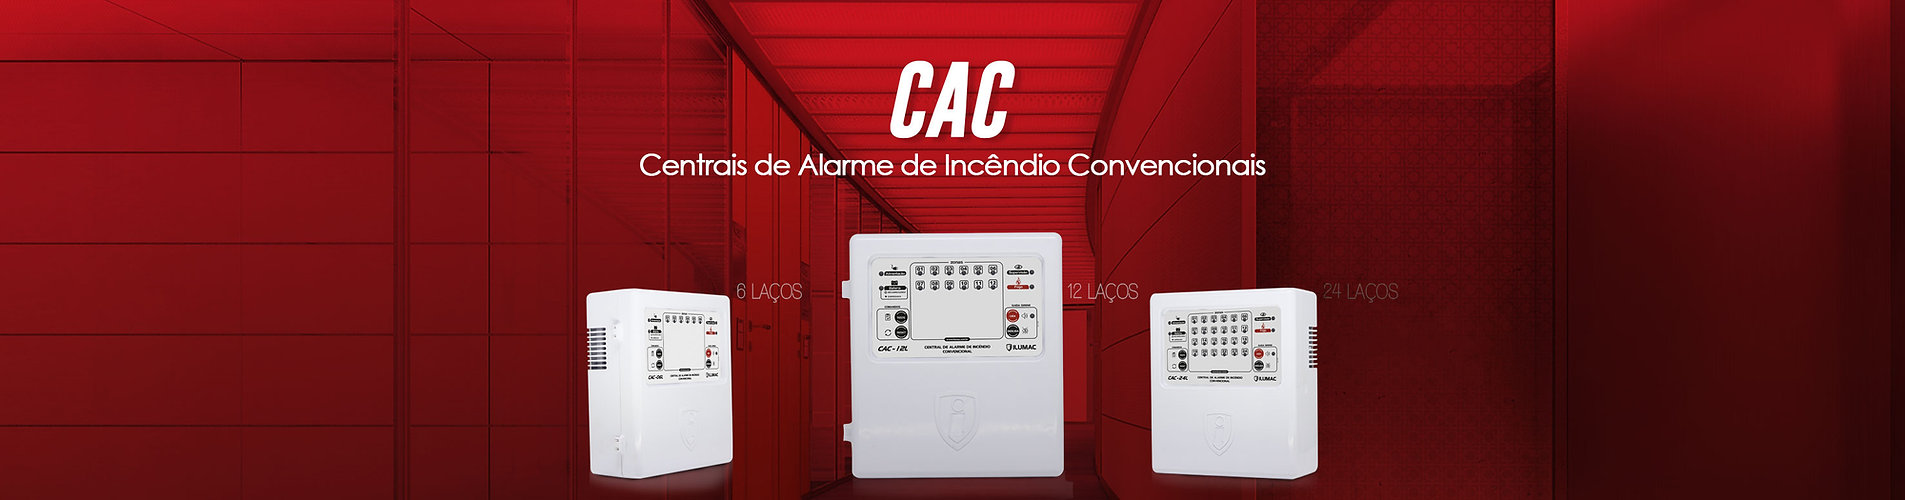 banner-SITE-CAC-2020-augusto-1.jpg